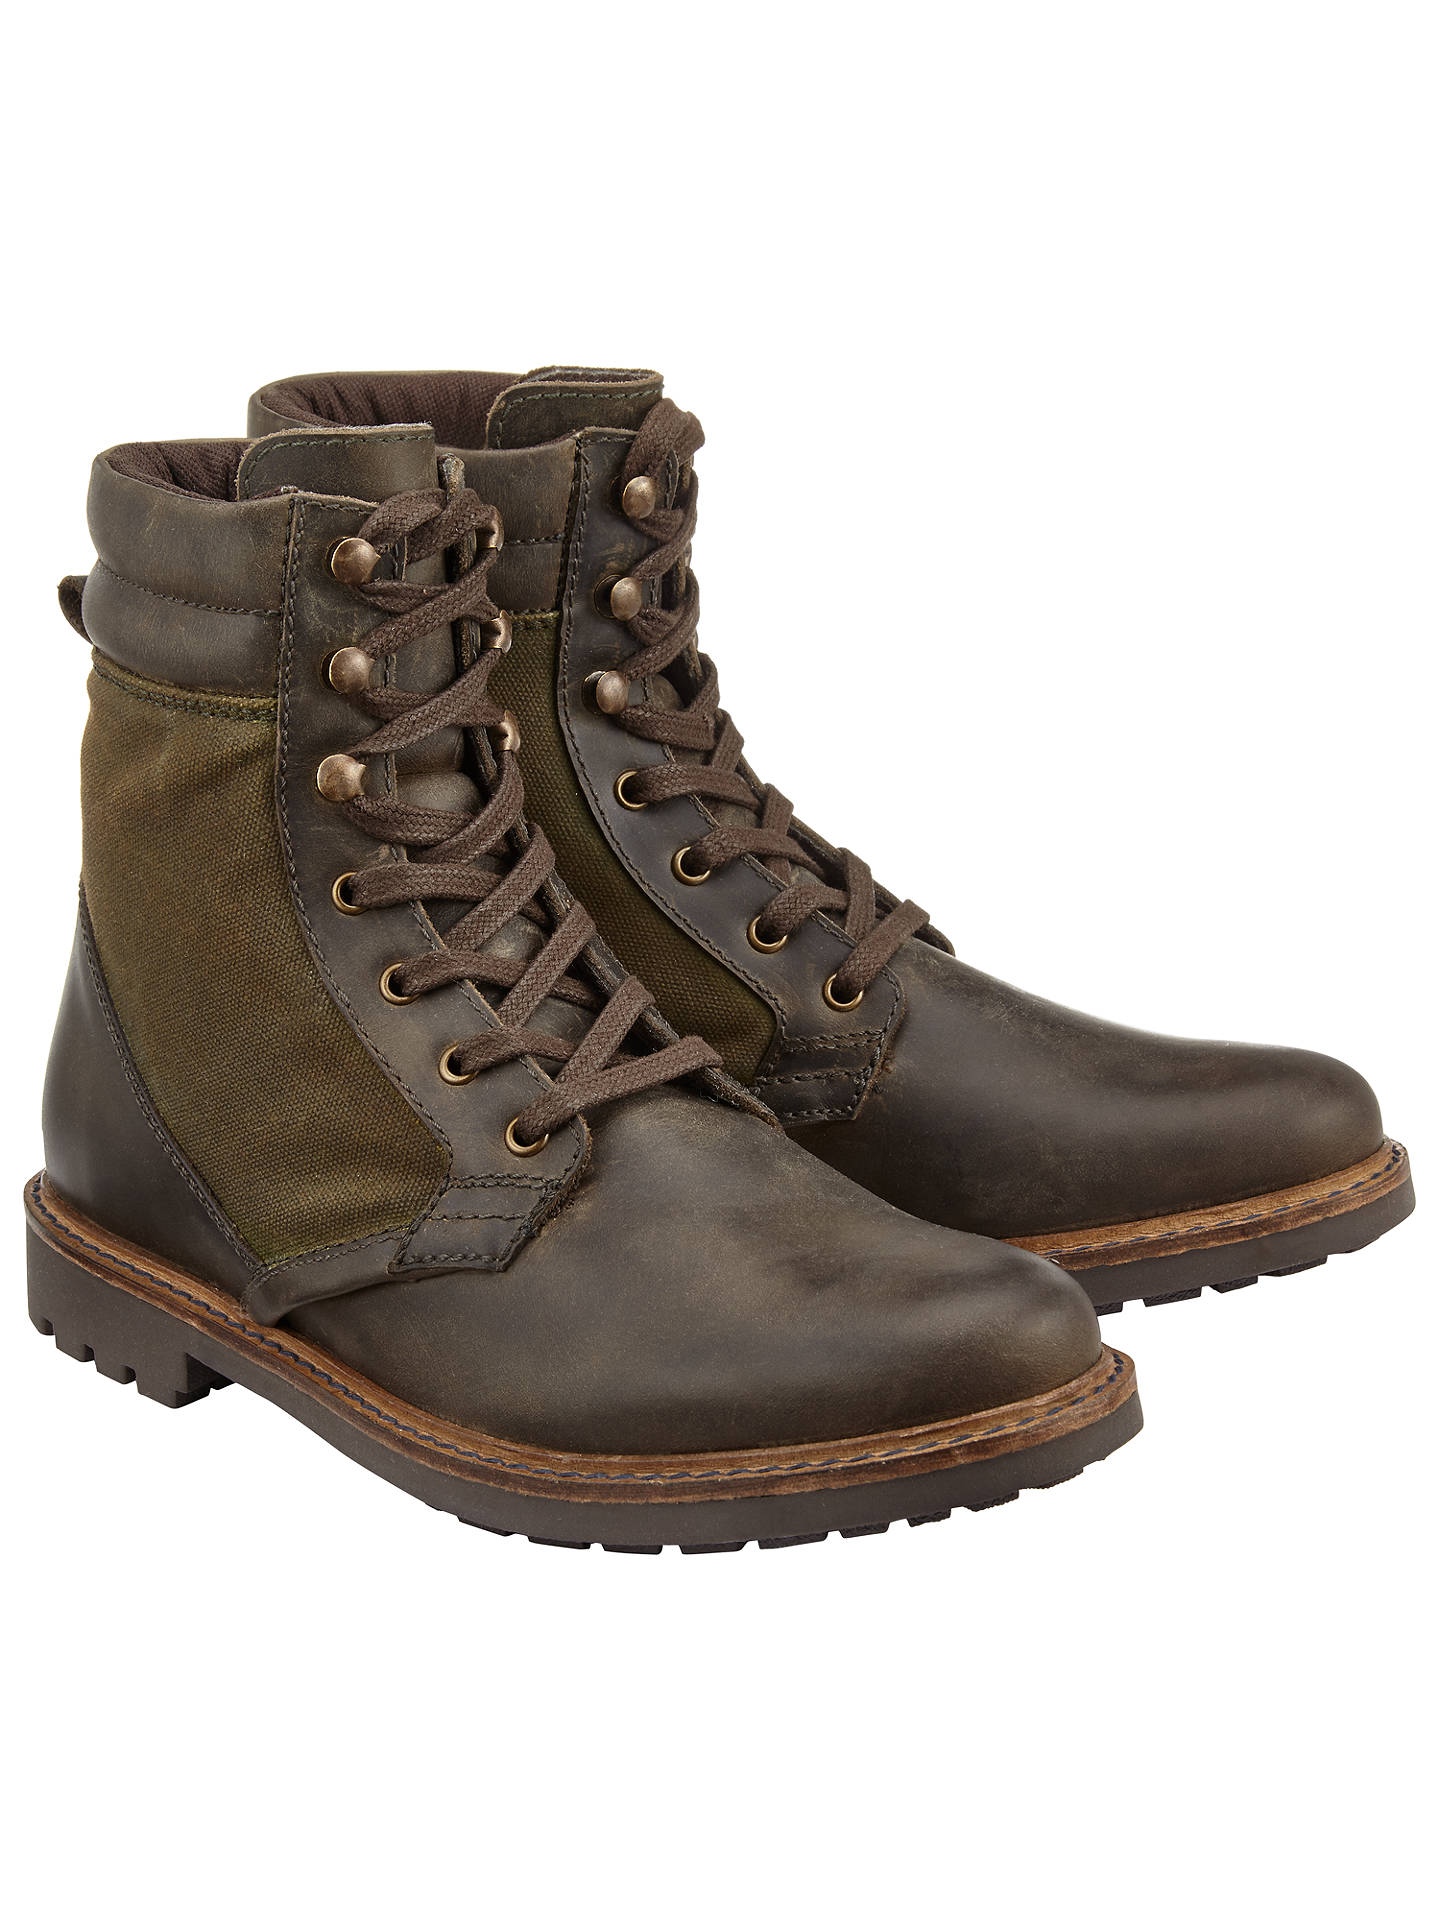 BuyJohn Lewis Wax Canvas Boots, Olive, 7 Online at johnlewis.com